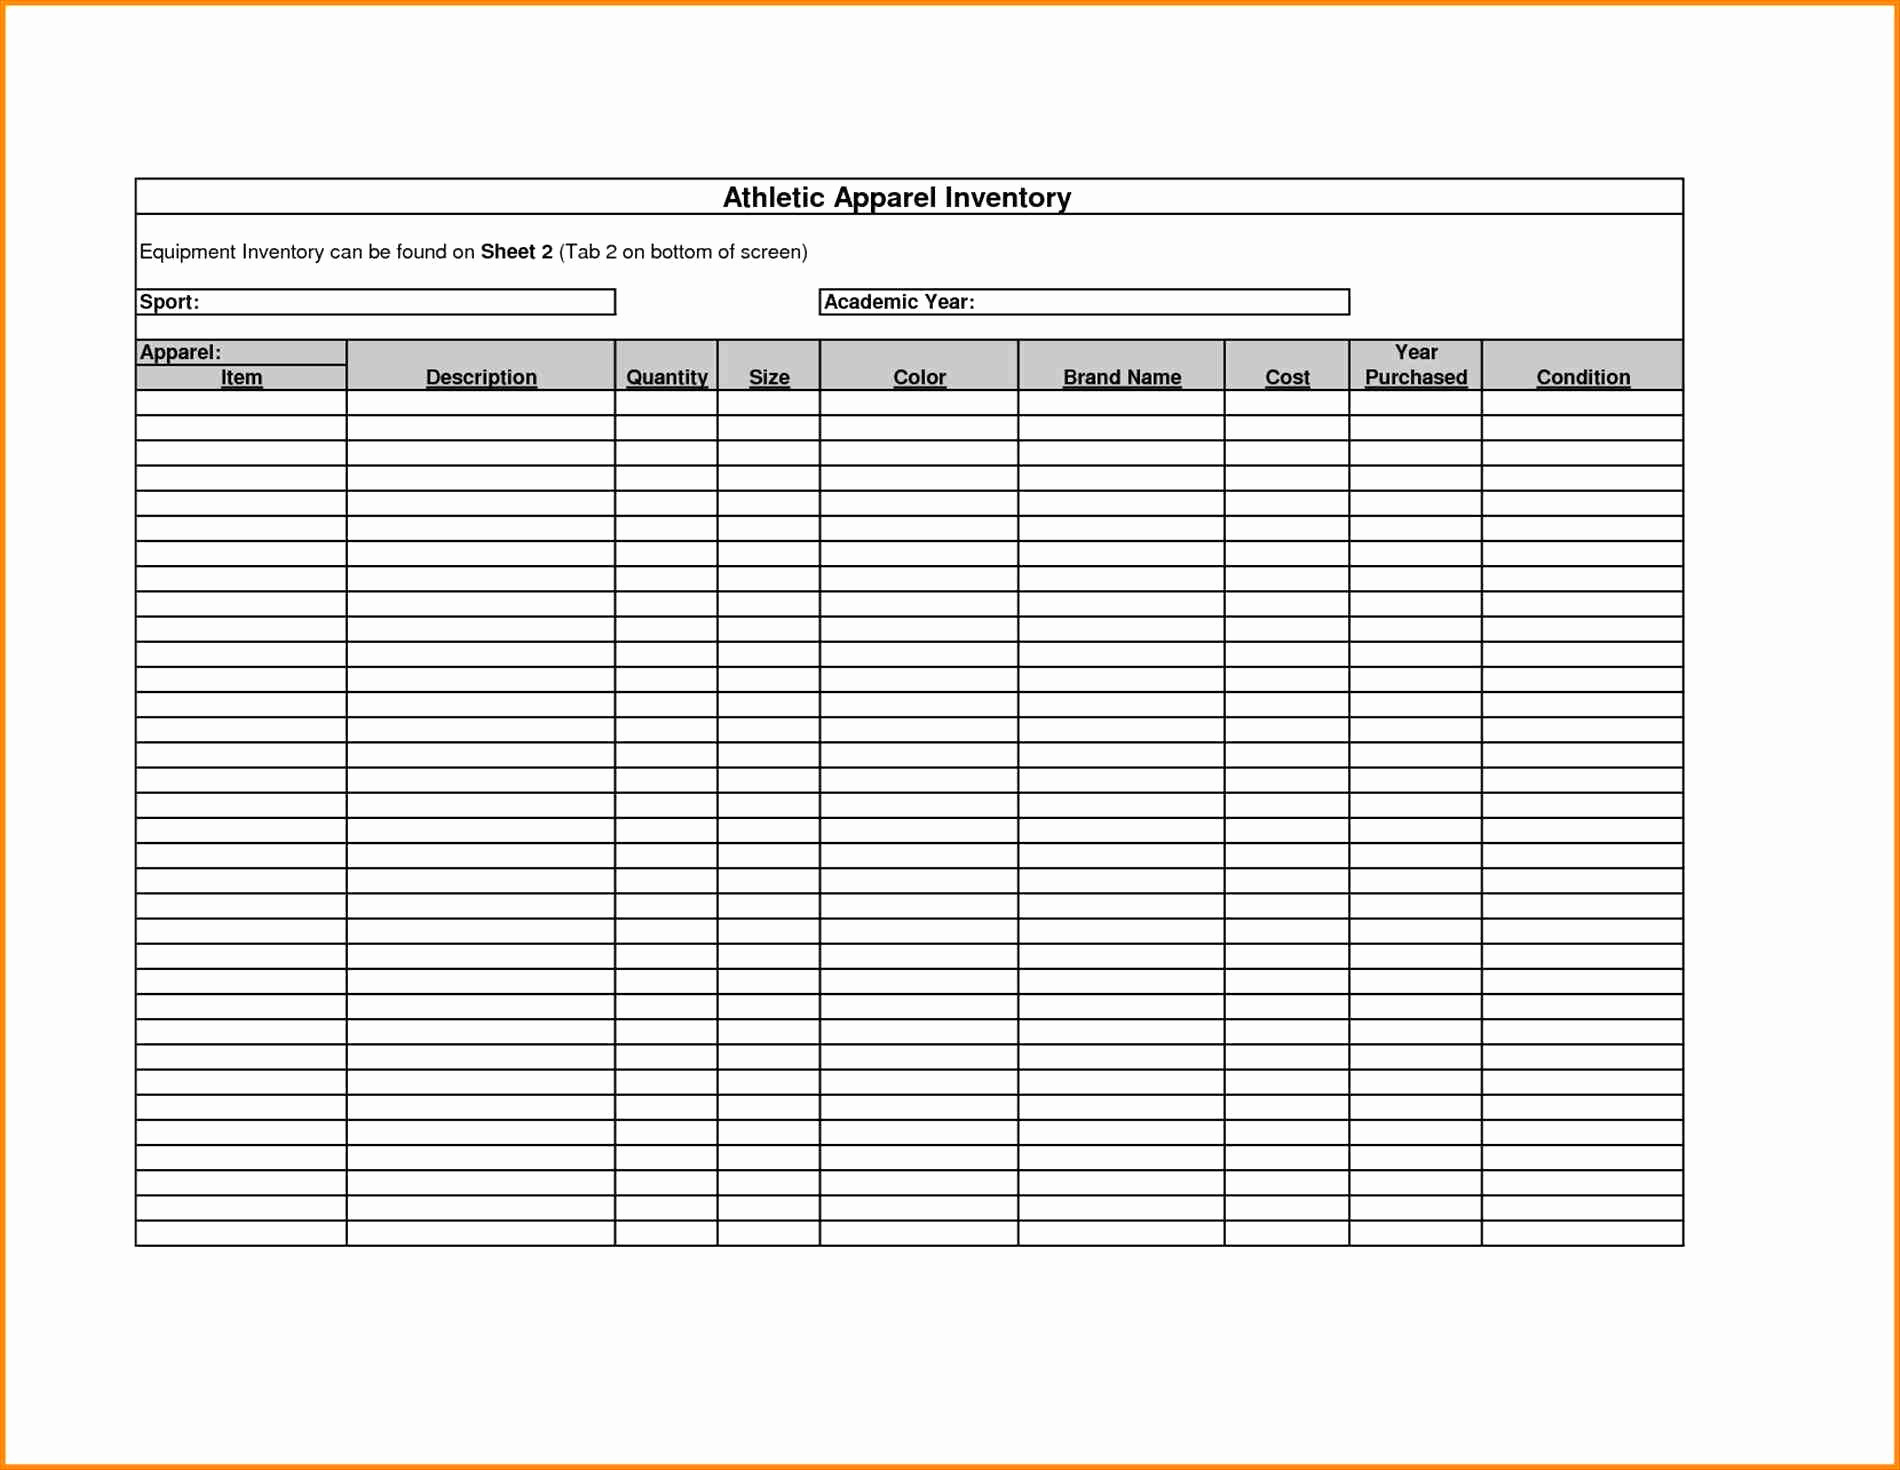 How To Do An Inventory Spreadsheet Intended For How To Make A Simple Inventory Spreadsheet  Islamopedia